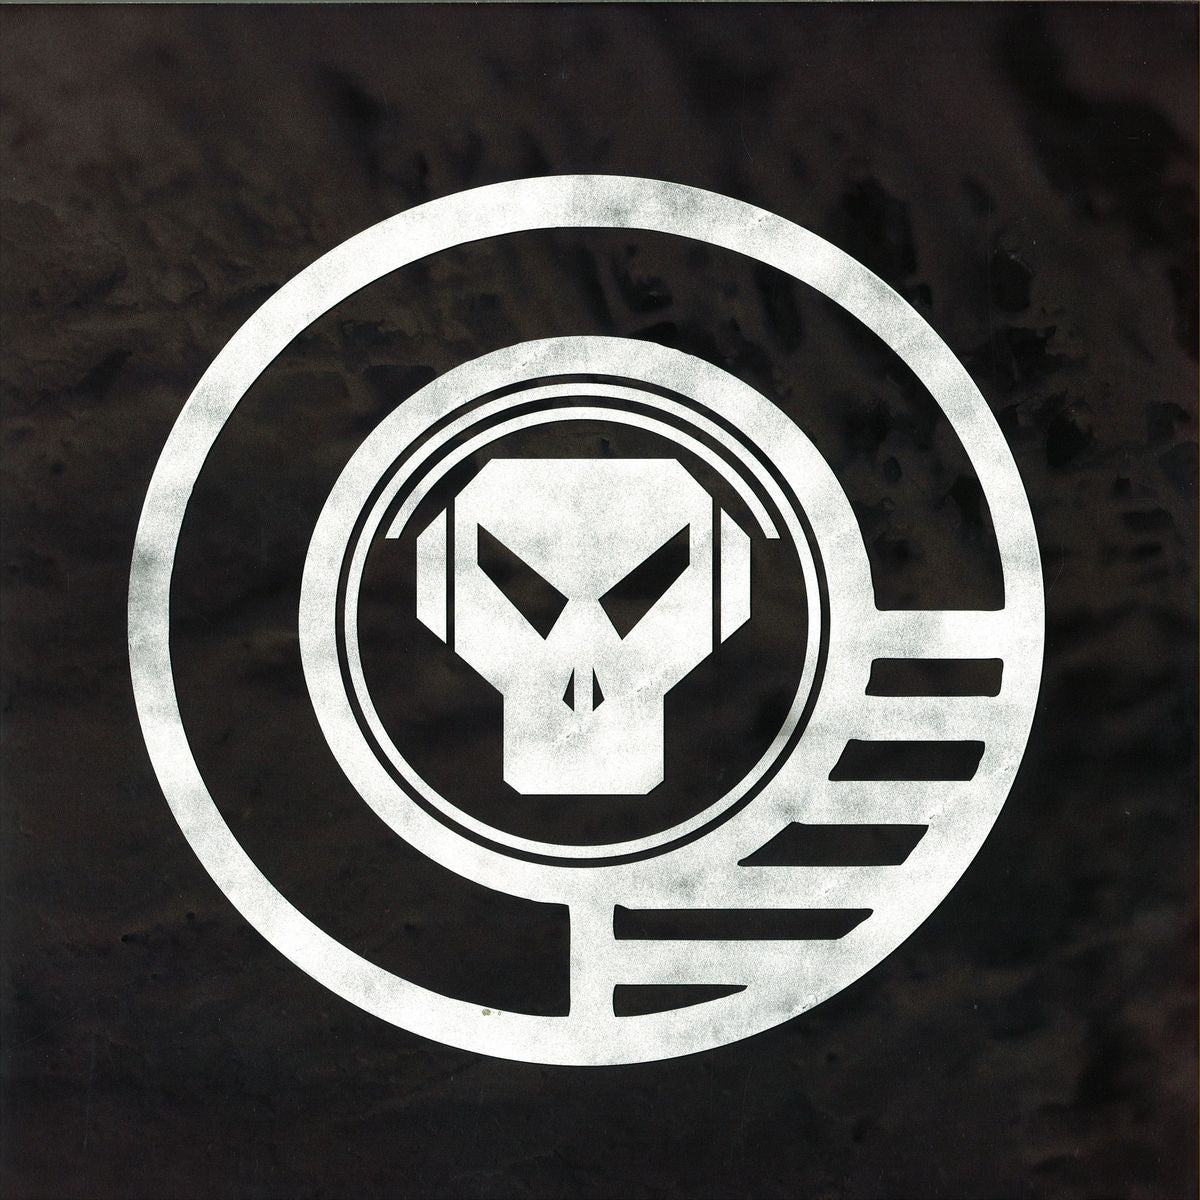 Fierce & Zero T - Bonesmen / In Circles , Vinyl - Metalheadz, Unearthed Sounds